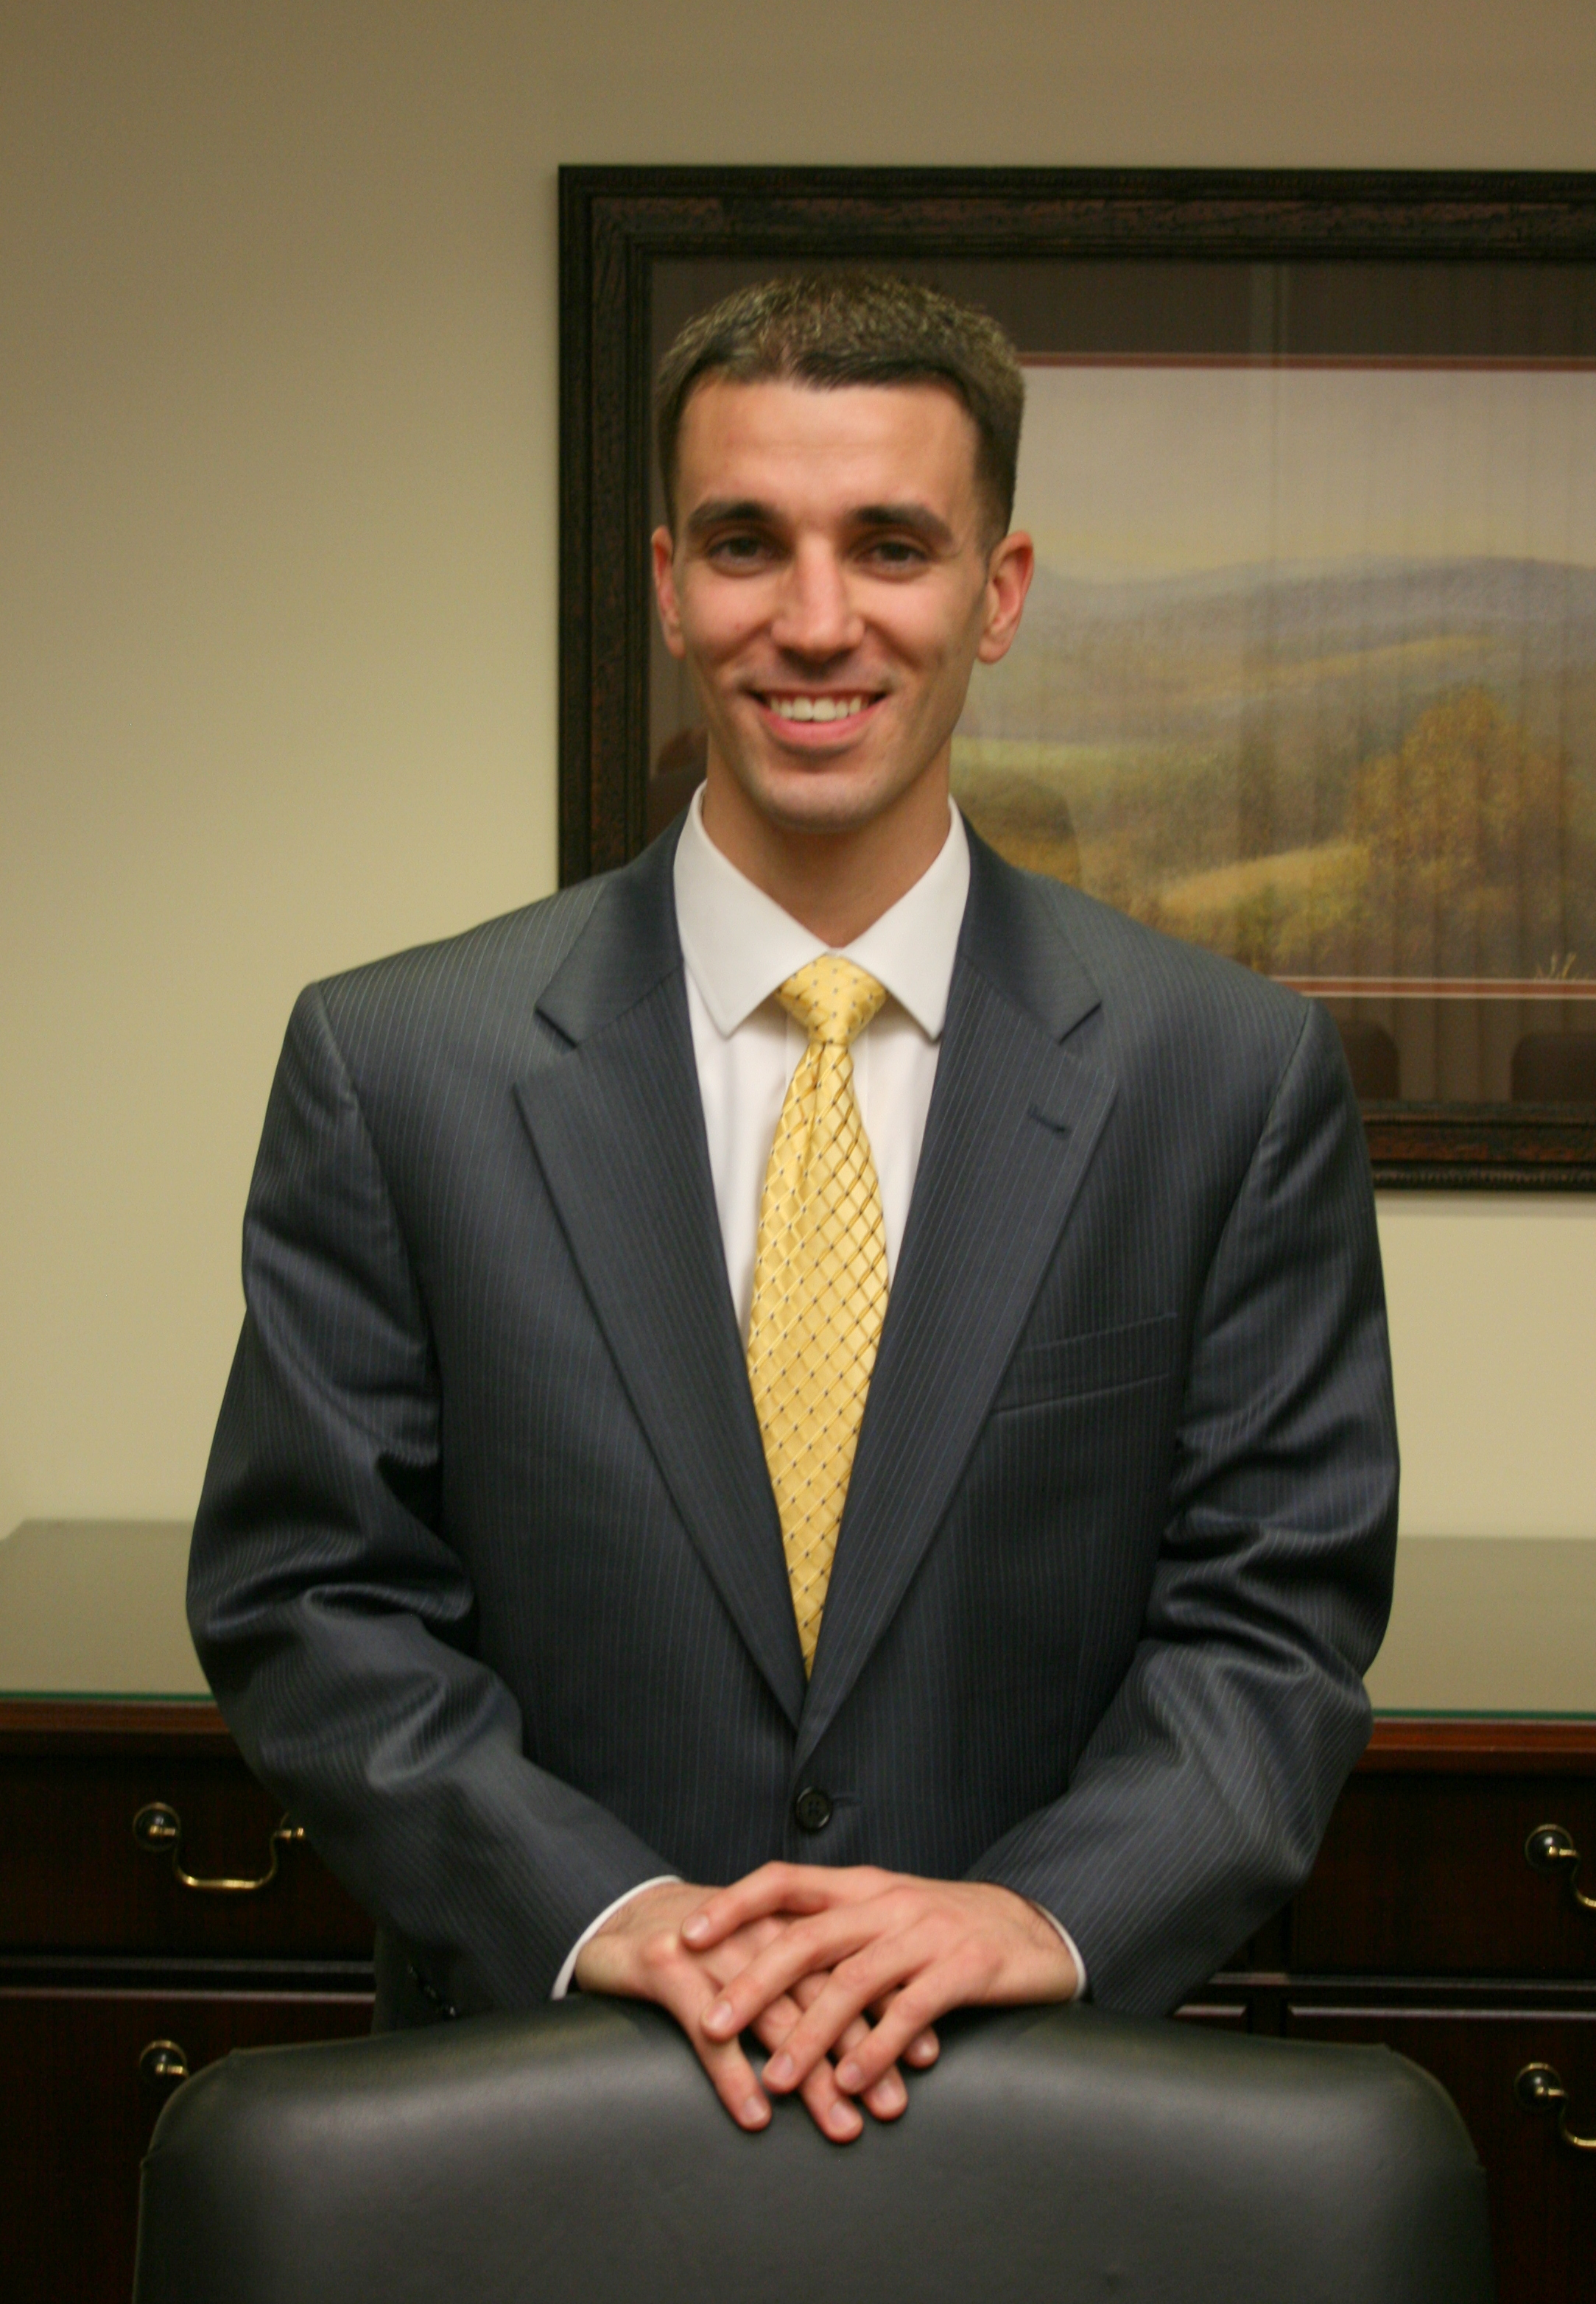 Michael Ryan, financial advisor Newbury MA